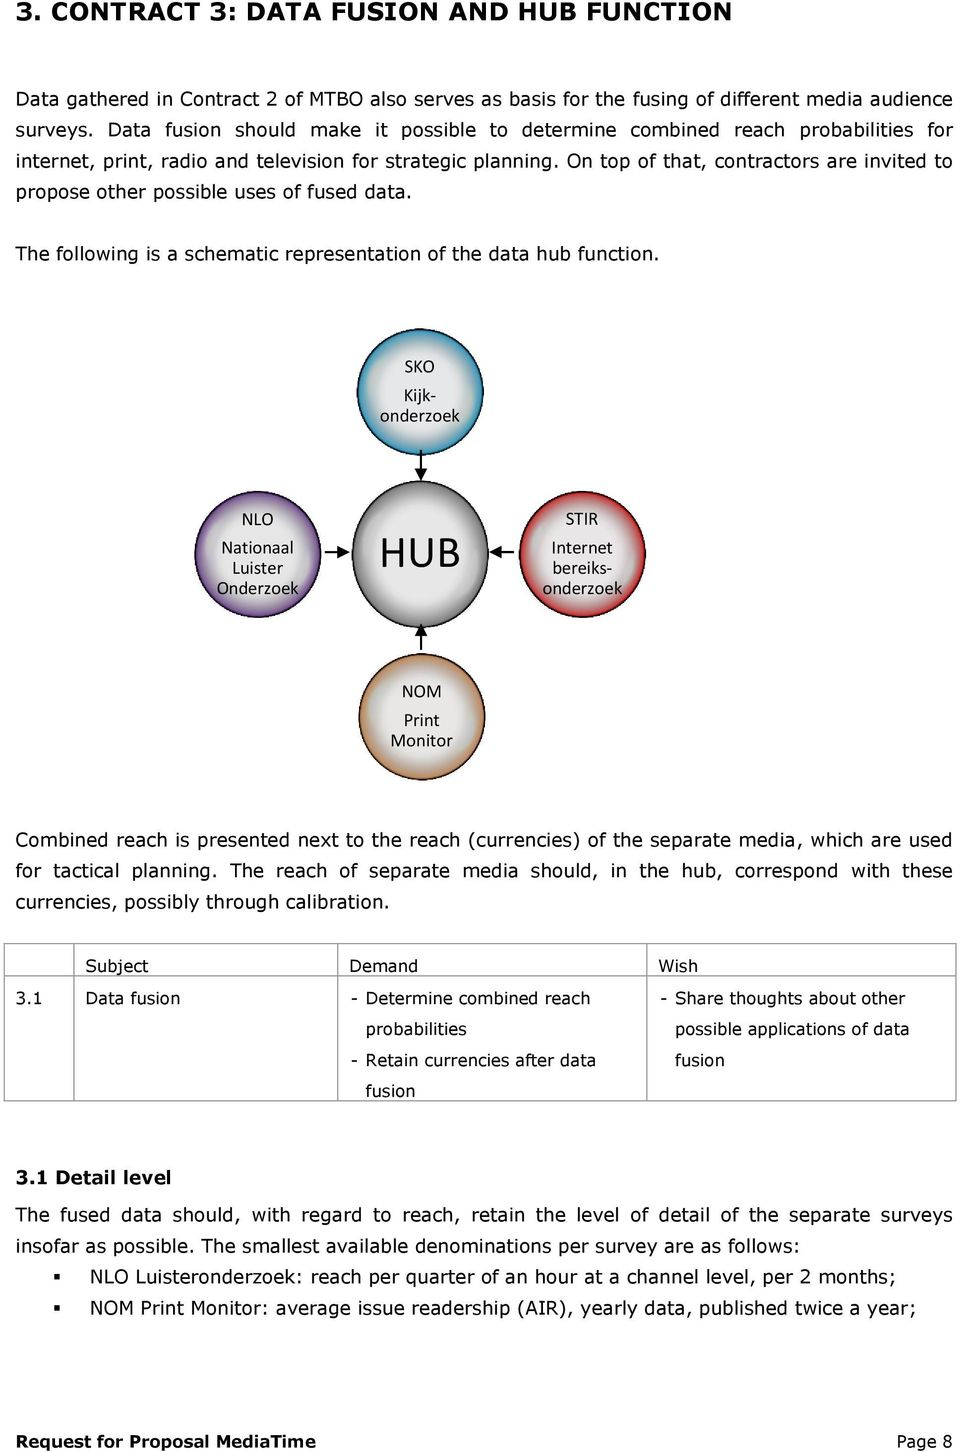 On top of that, contractors are invited to propose other possible uses of fused data. The following is a schematic representation of the data hub function.